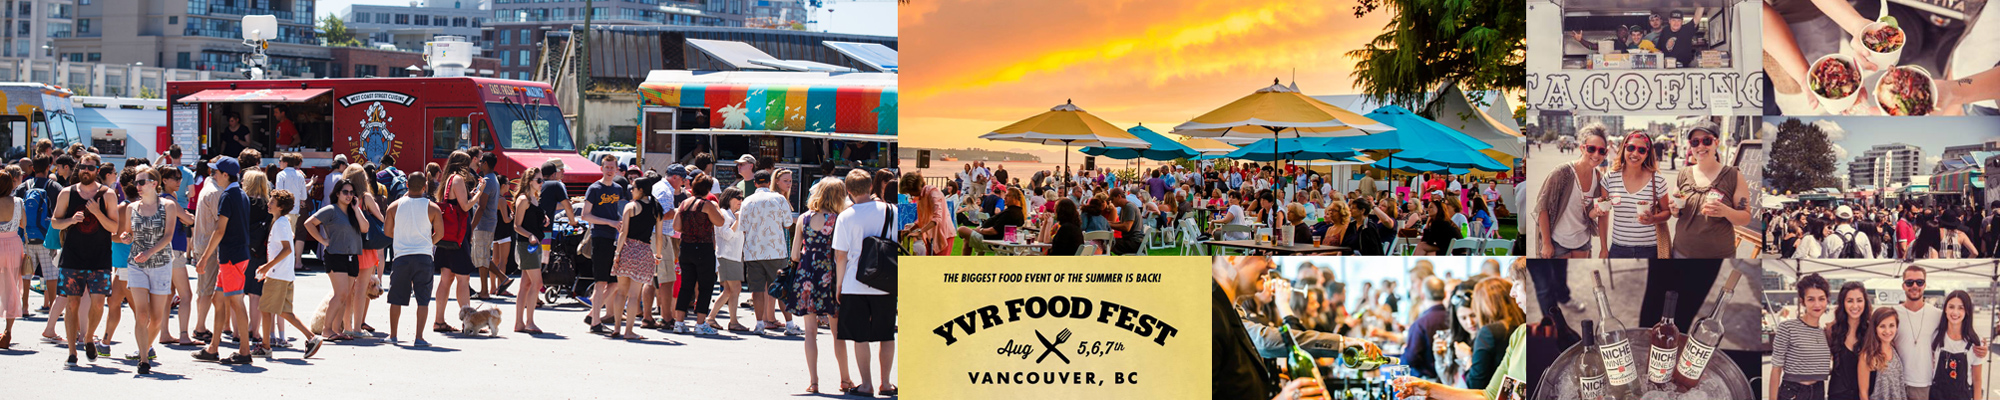 Vancouver Food Festival